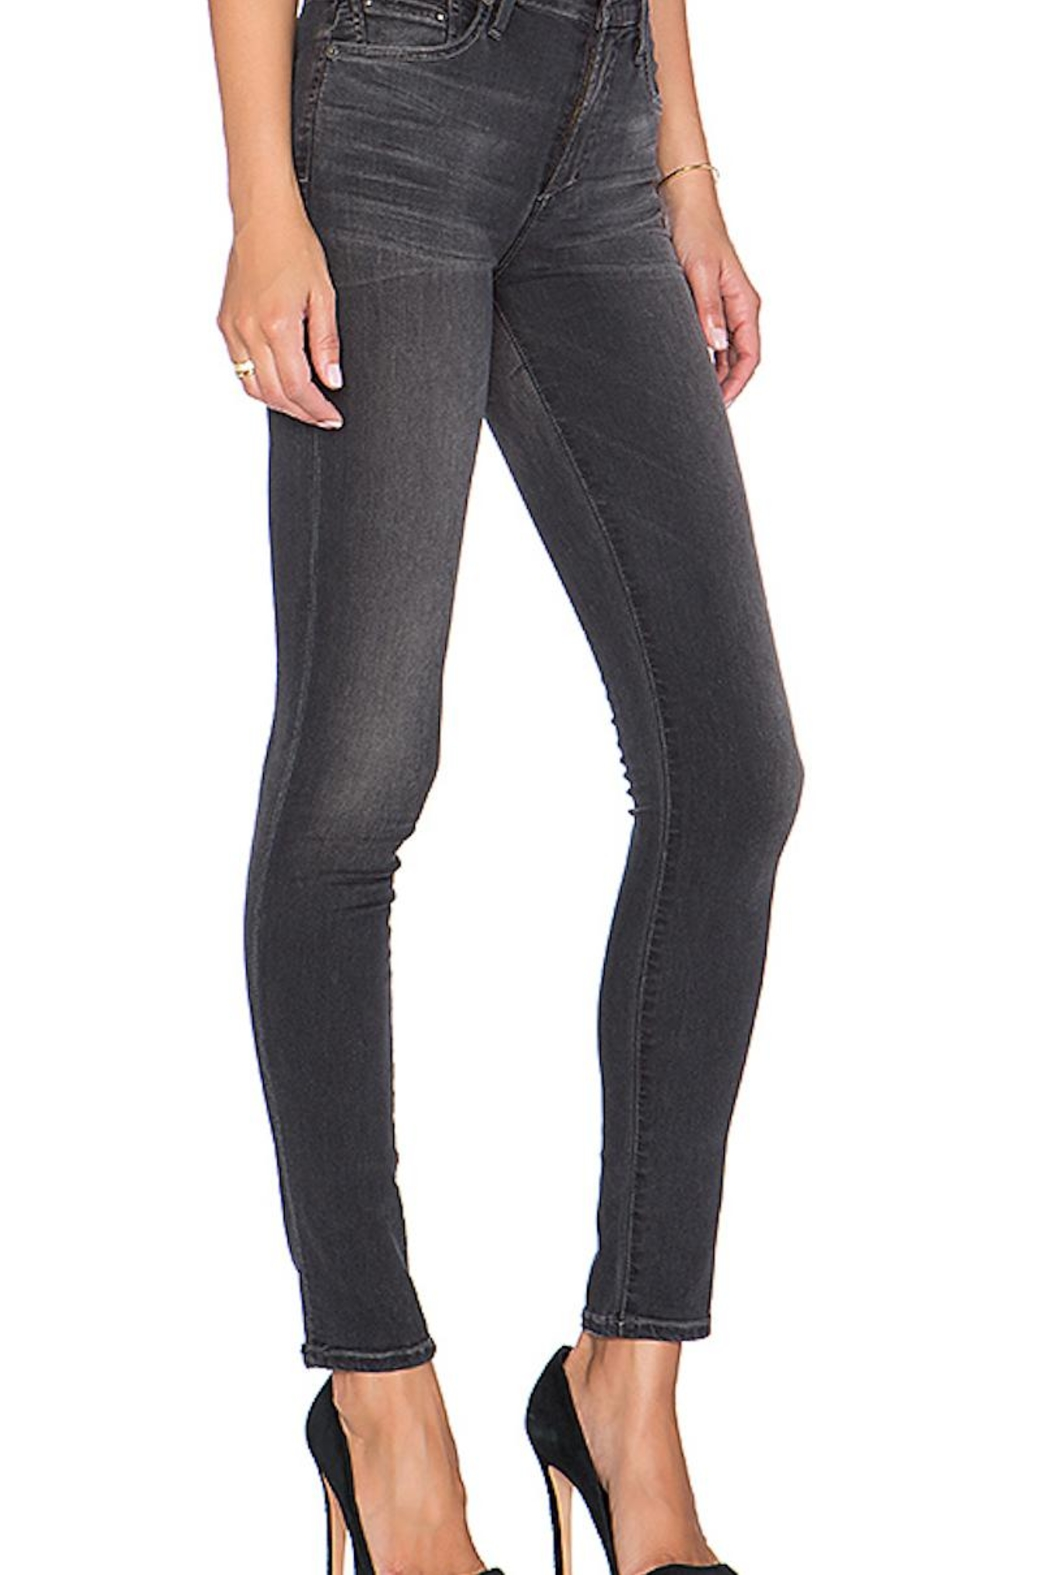 Citizens of Humanity Grey Skinny Jeans - Front Full Image